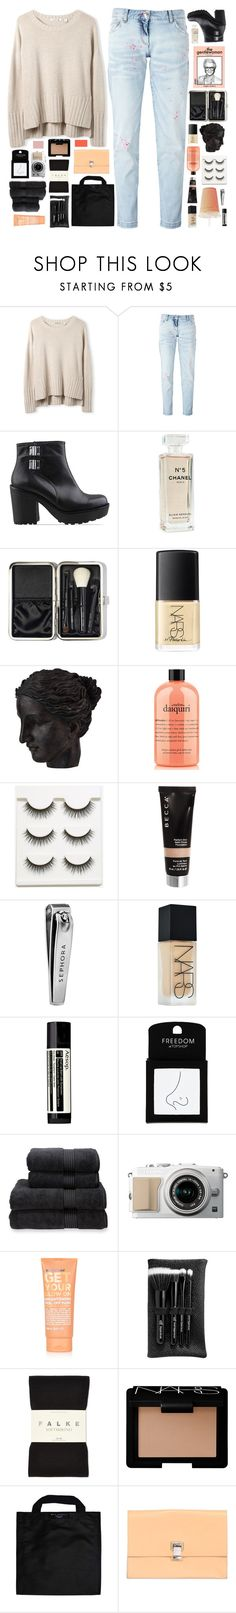 """""""☾ your heart of gold turned platinum"""" by thundxrstorms ❤ liked on Polyvore featuring Philipp Plein, Vagabond, Chanel, Bobbi Brown Cosmetics, NARS Cosmetics, Ren-Wil, philosophy, Becca, Sephora Collection and Aesop"""